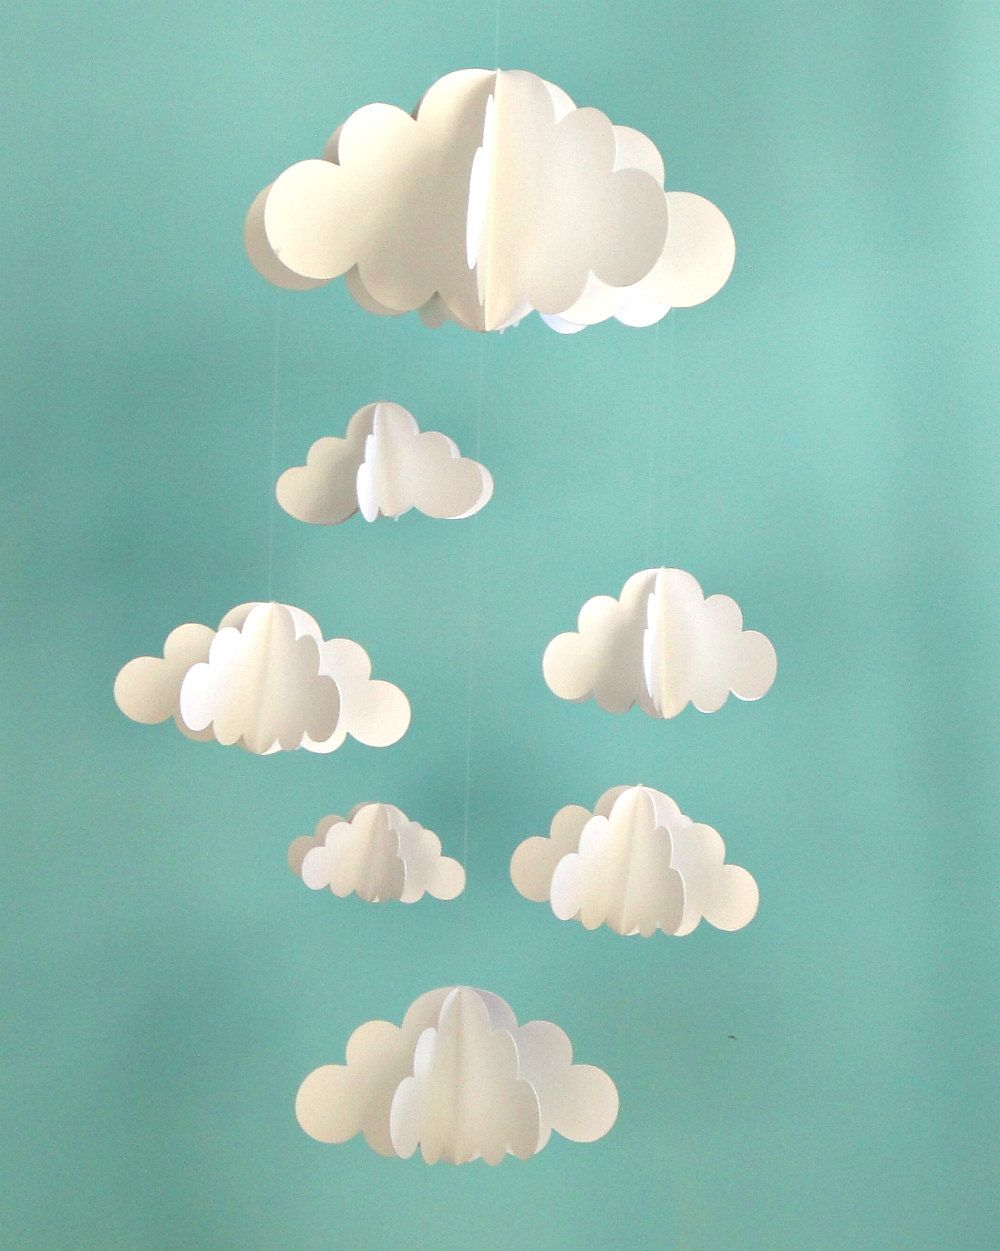 cloud baby mobile hanging baby mobile d paper mobile nursery  - staring at the clouds in a crib with this mobile would give you a